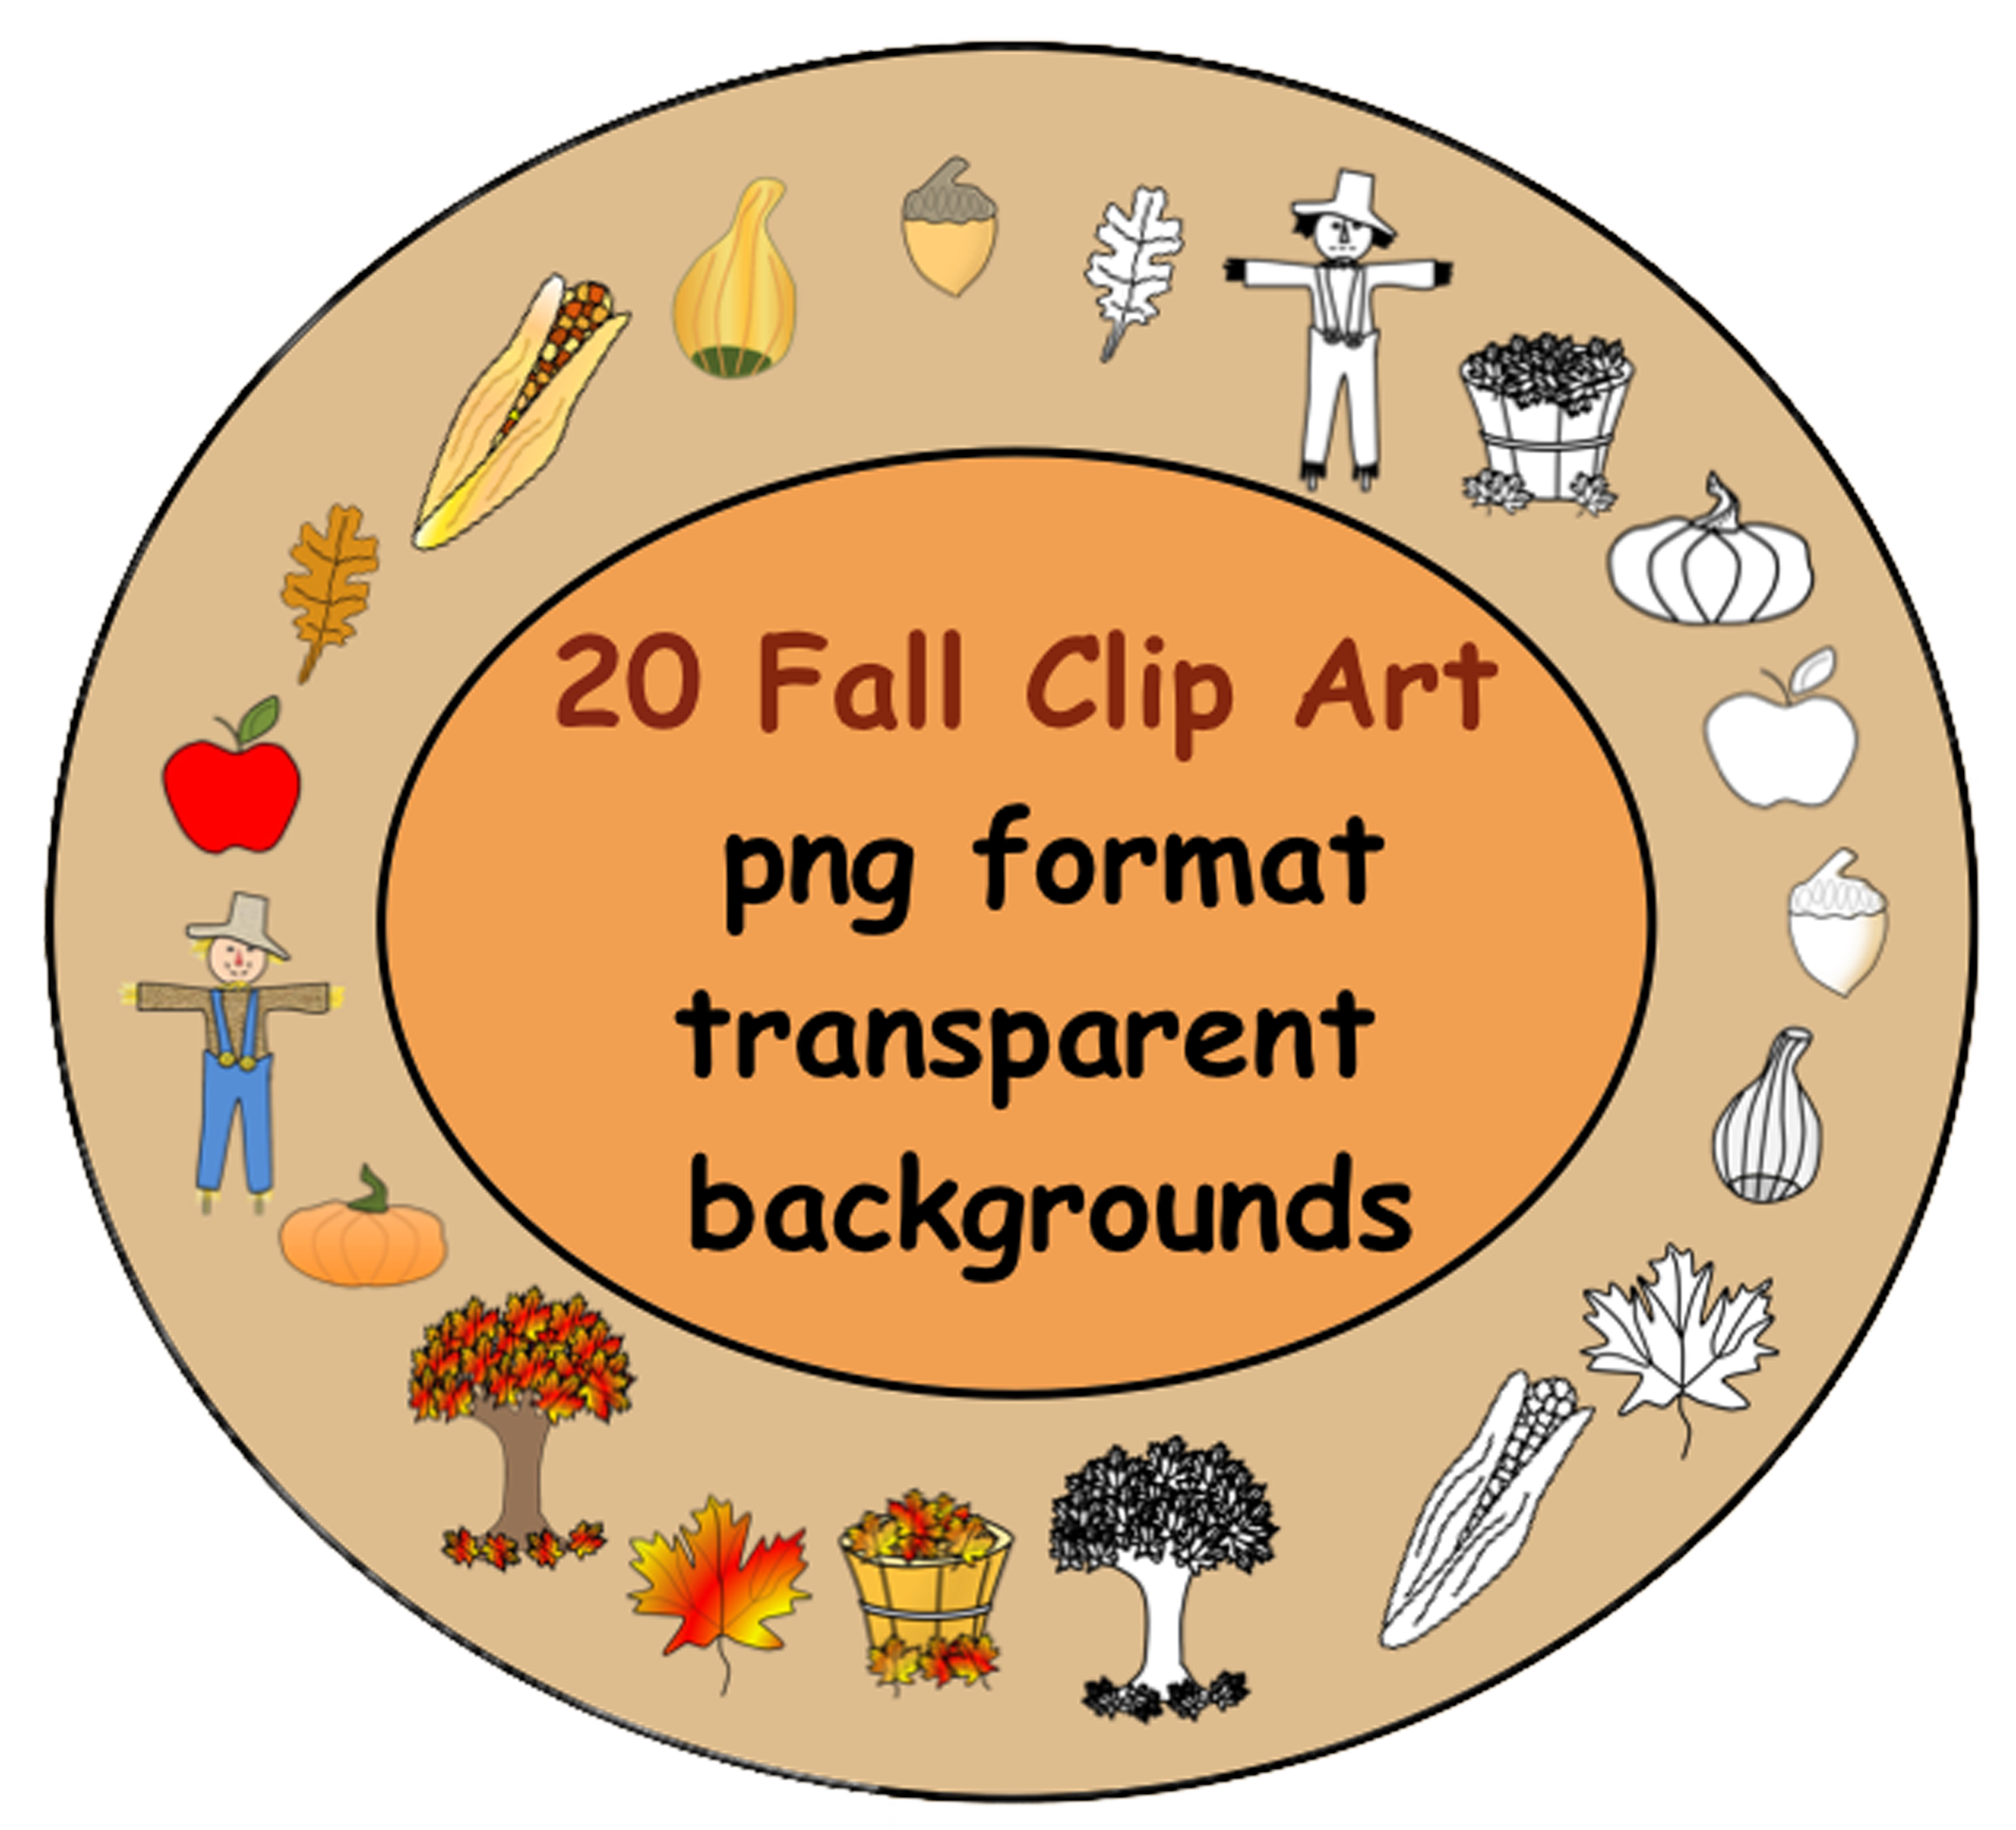 Bushel of pumpkins clipart clip art royalty free stock 35 Fall Clip Art in Png format with transparent backgrounds ... clip art royalty free stock